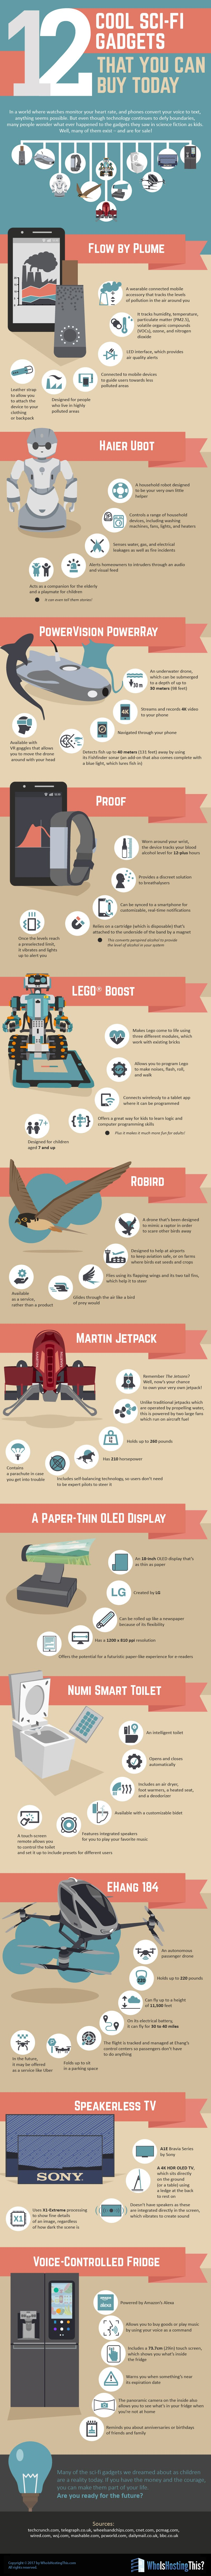 12 Unbelievable Gadgets You Can Buy Today - #infographic